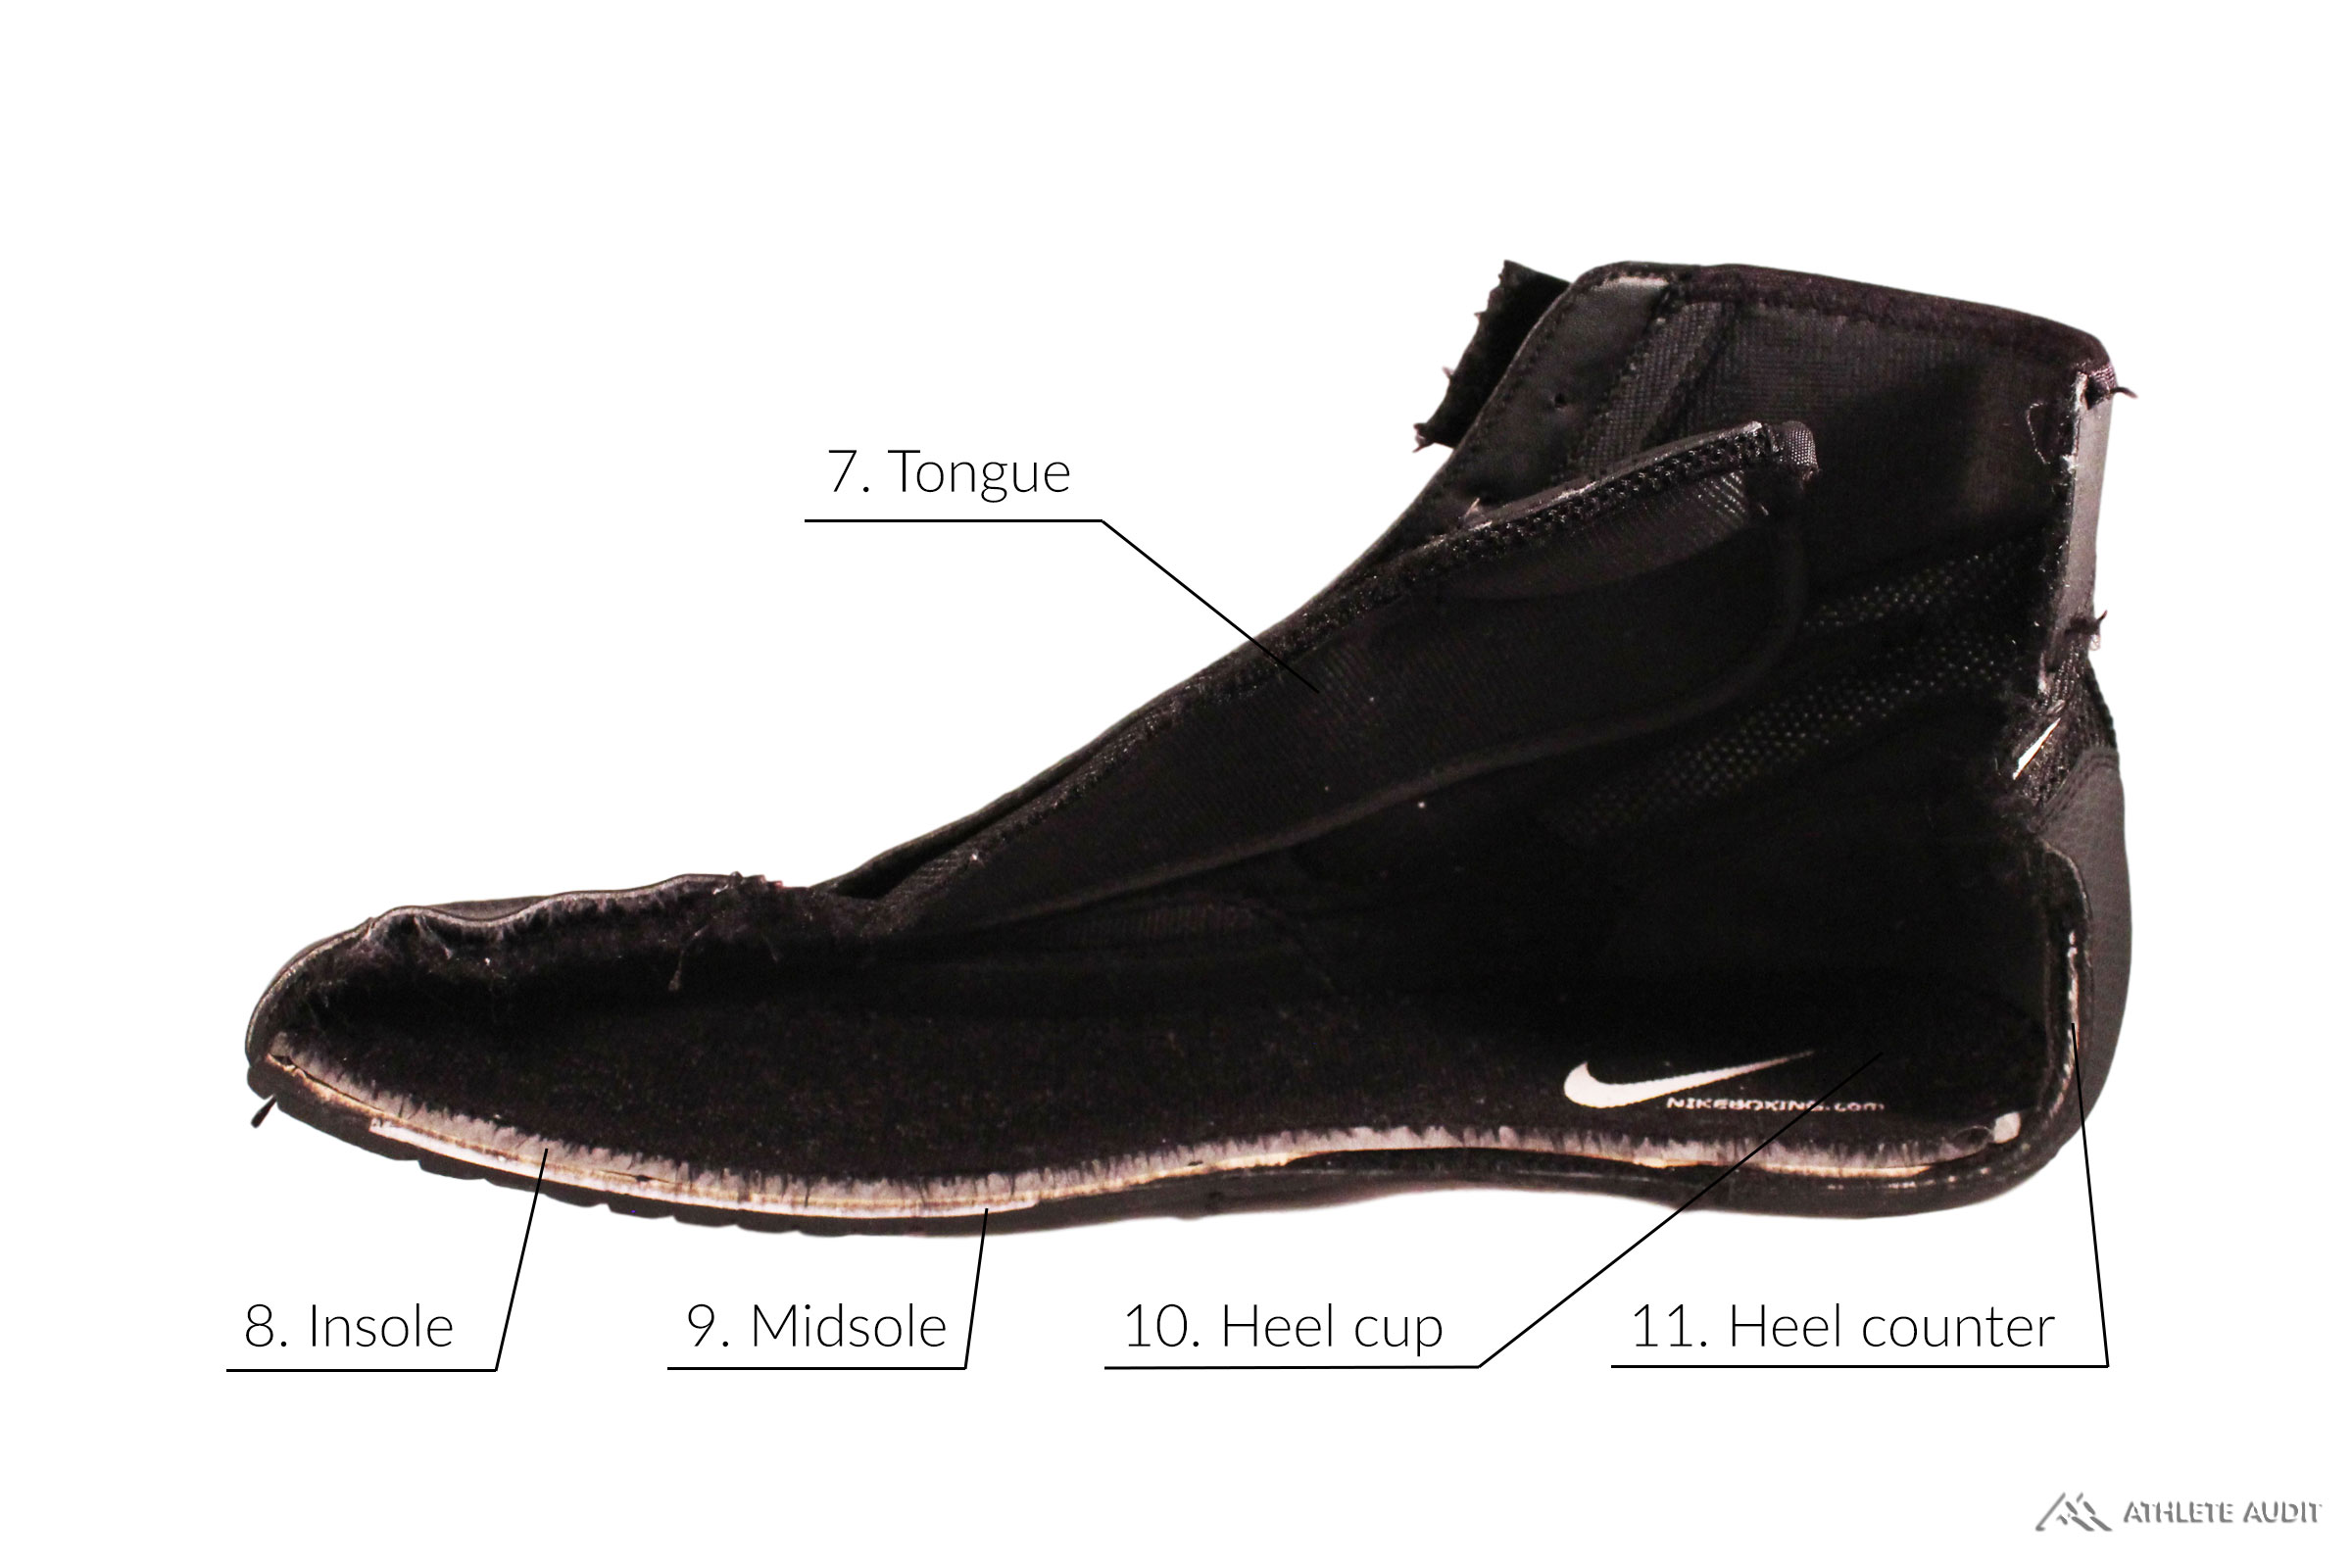 Parts of a Boxing Shoe - Inside - Anatomy of an Athletic Shoe - Athlete Audit